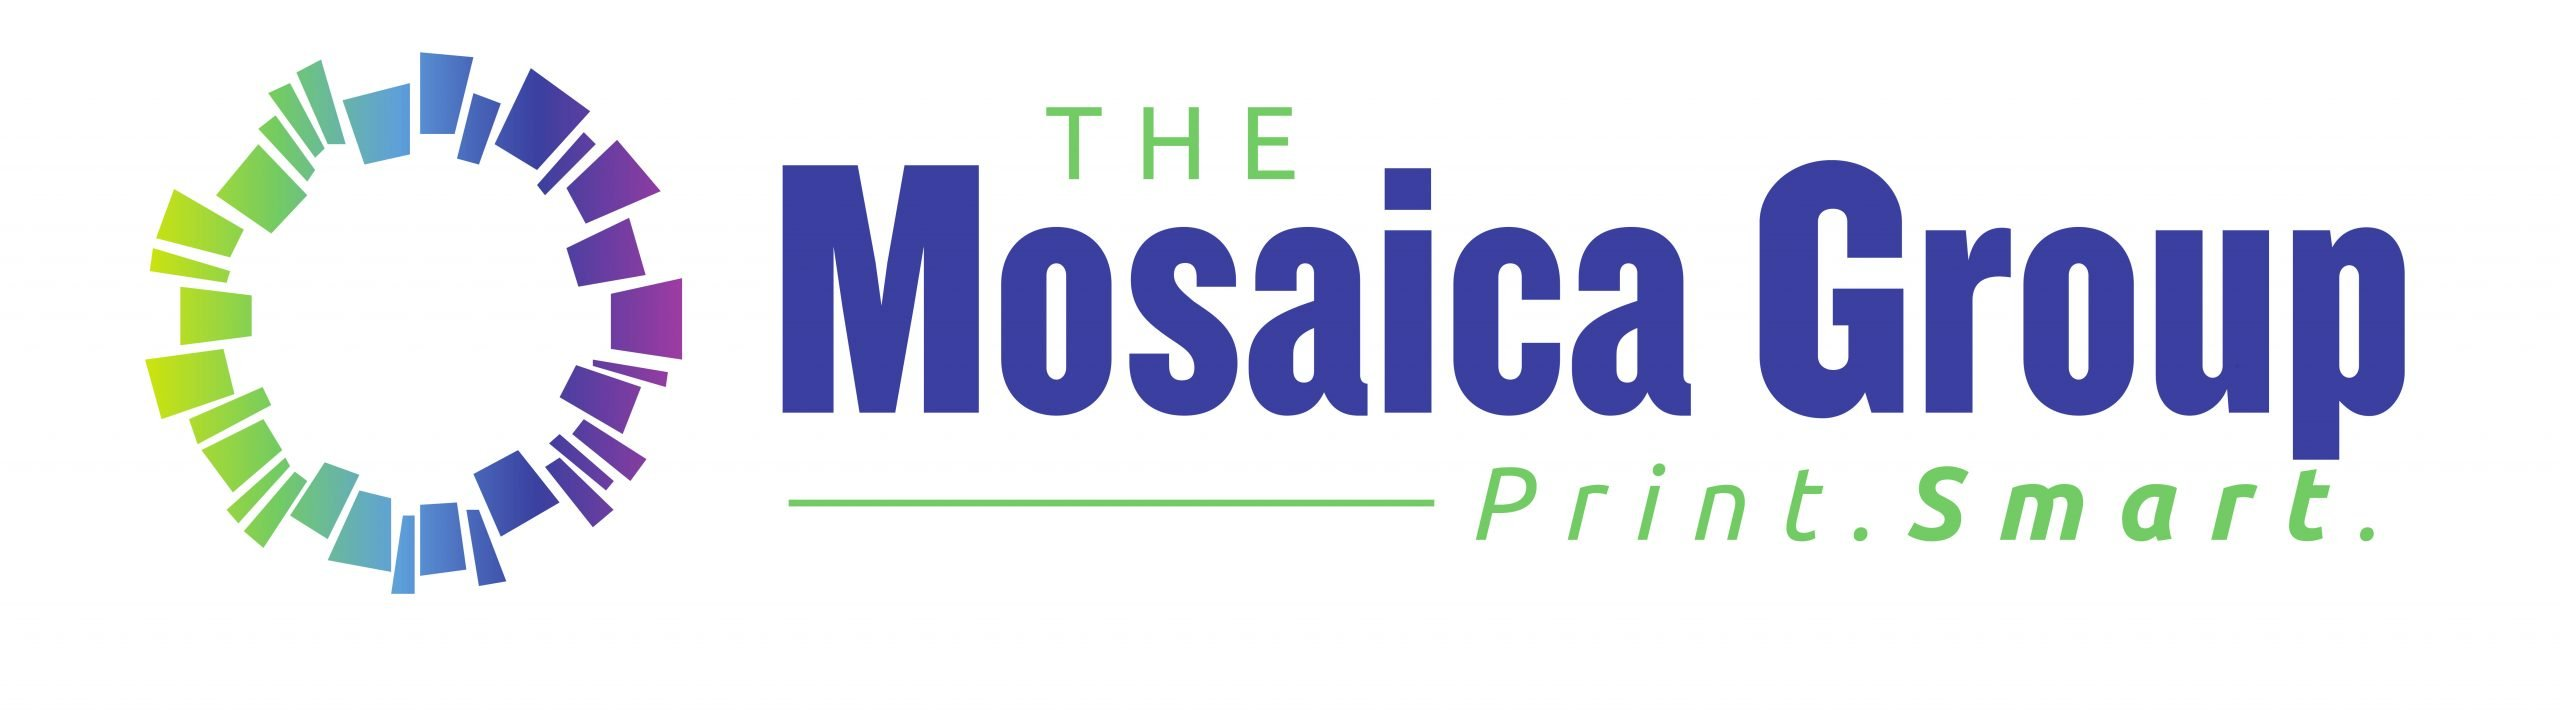 The Mosaica Group